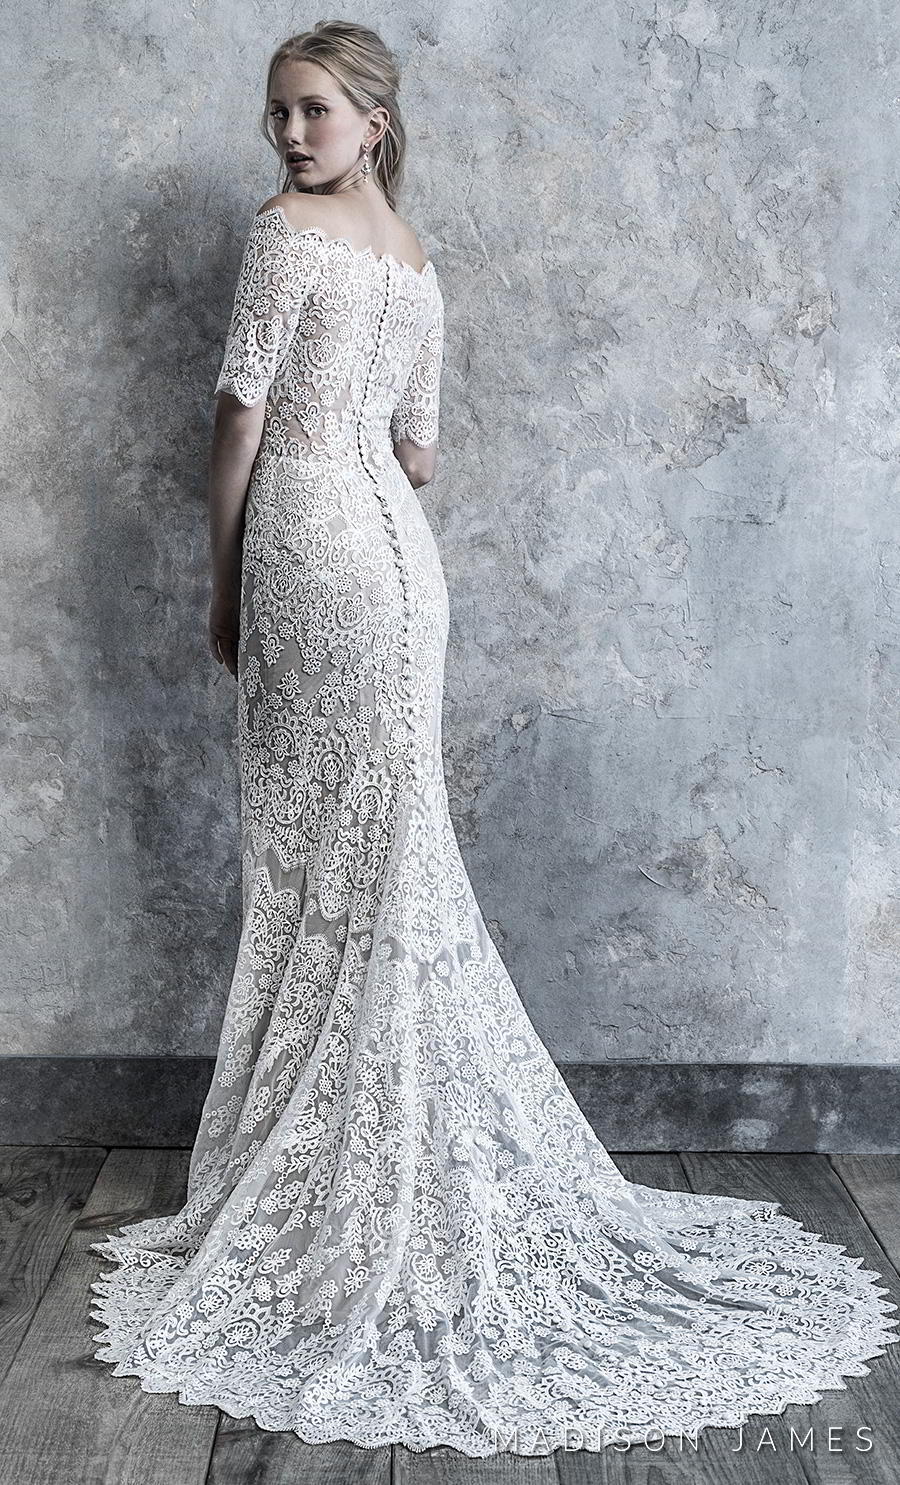 madison james 2019 bridal half sleeves off the shoulder straight across neckline full embellishment elegant fit and flare sheath wedding dress covered back chapel train (515) bv